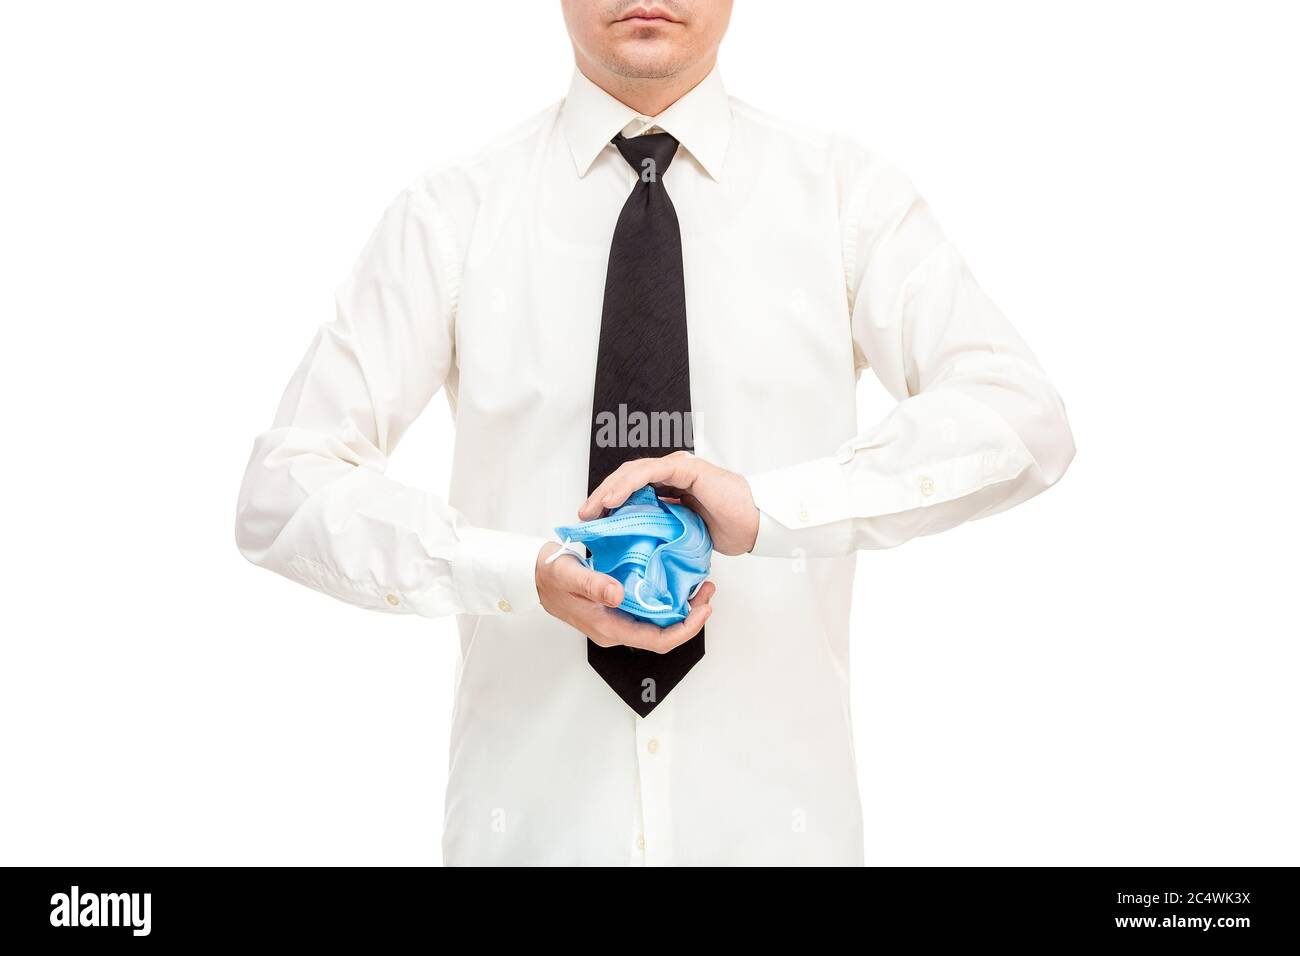 faceless man in white shirt and black tie crumpled bunch of ineffective and useless medical masks in his hands in protest against the quarantine crisi Stock Photo